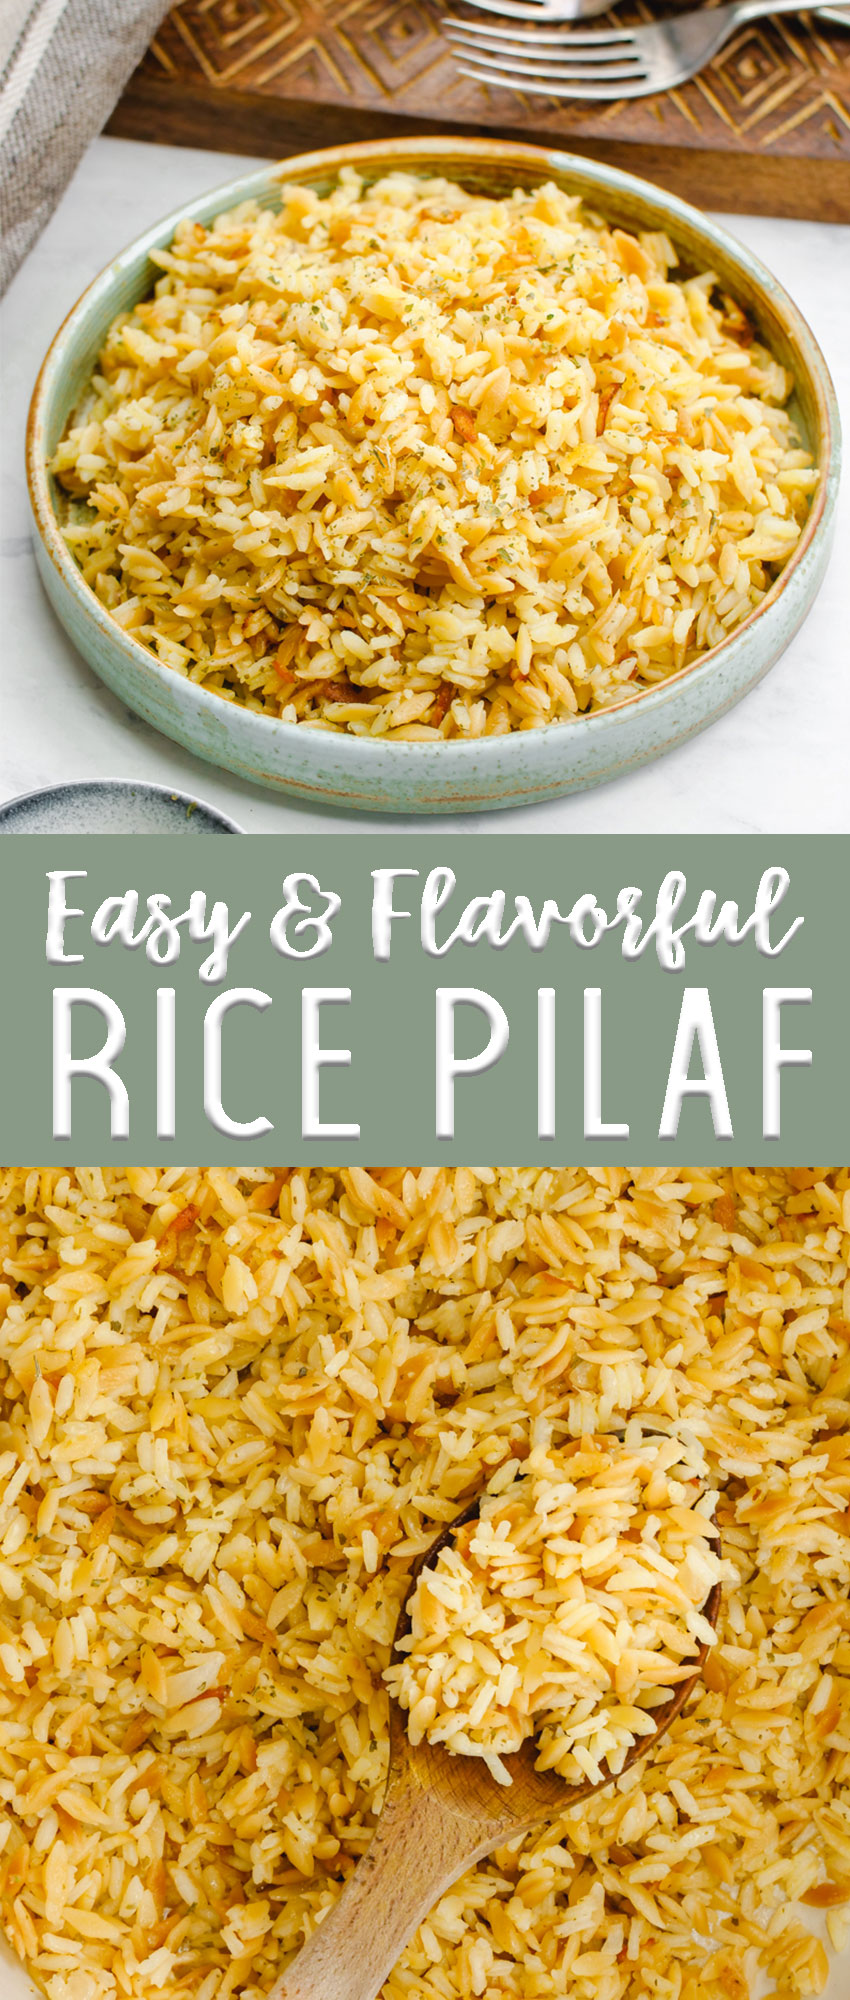 Easy rice pilaf makes the perfect side dish for any meal